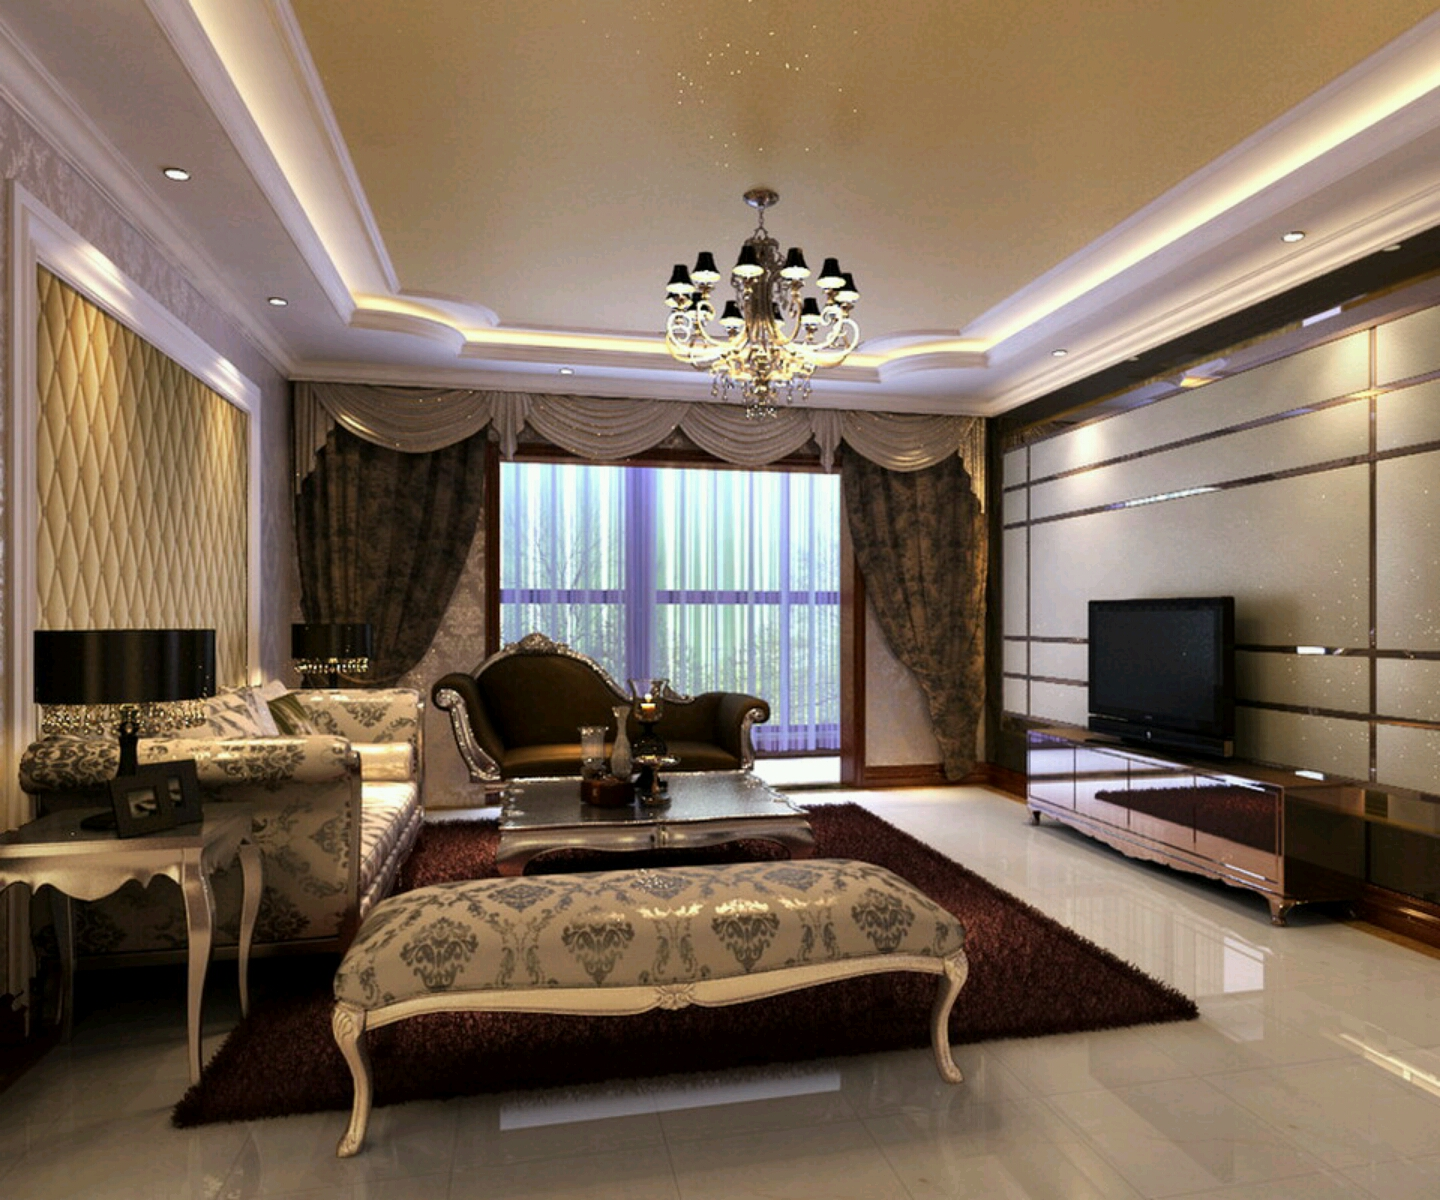 Home Design Ideas For Small Living Room: New Home Designs Latest.: Luxury Homes Interior Decoration